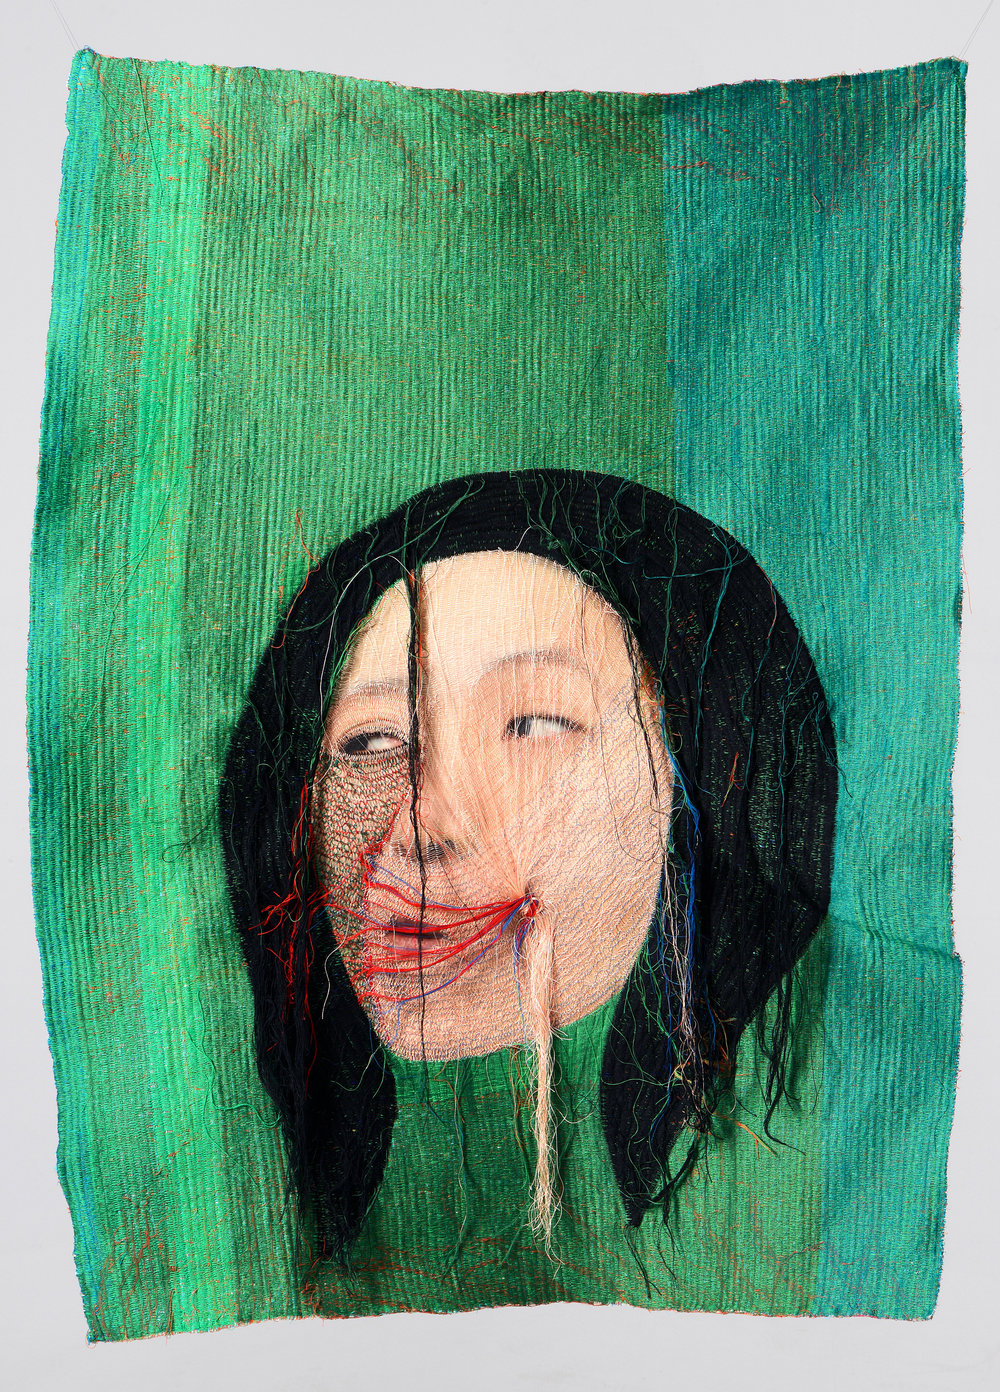 Rag face #14003, 2014 . Sewing on Fabric and Photograph Unique.  Courtesy Yossi Milo Gallery, New York.  © Yoon Ji Seon.